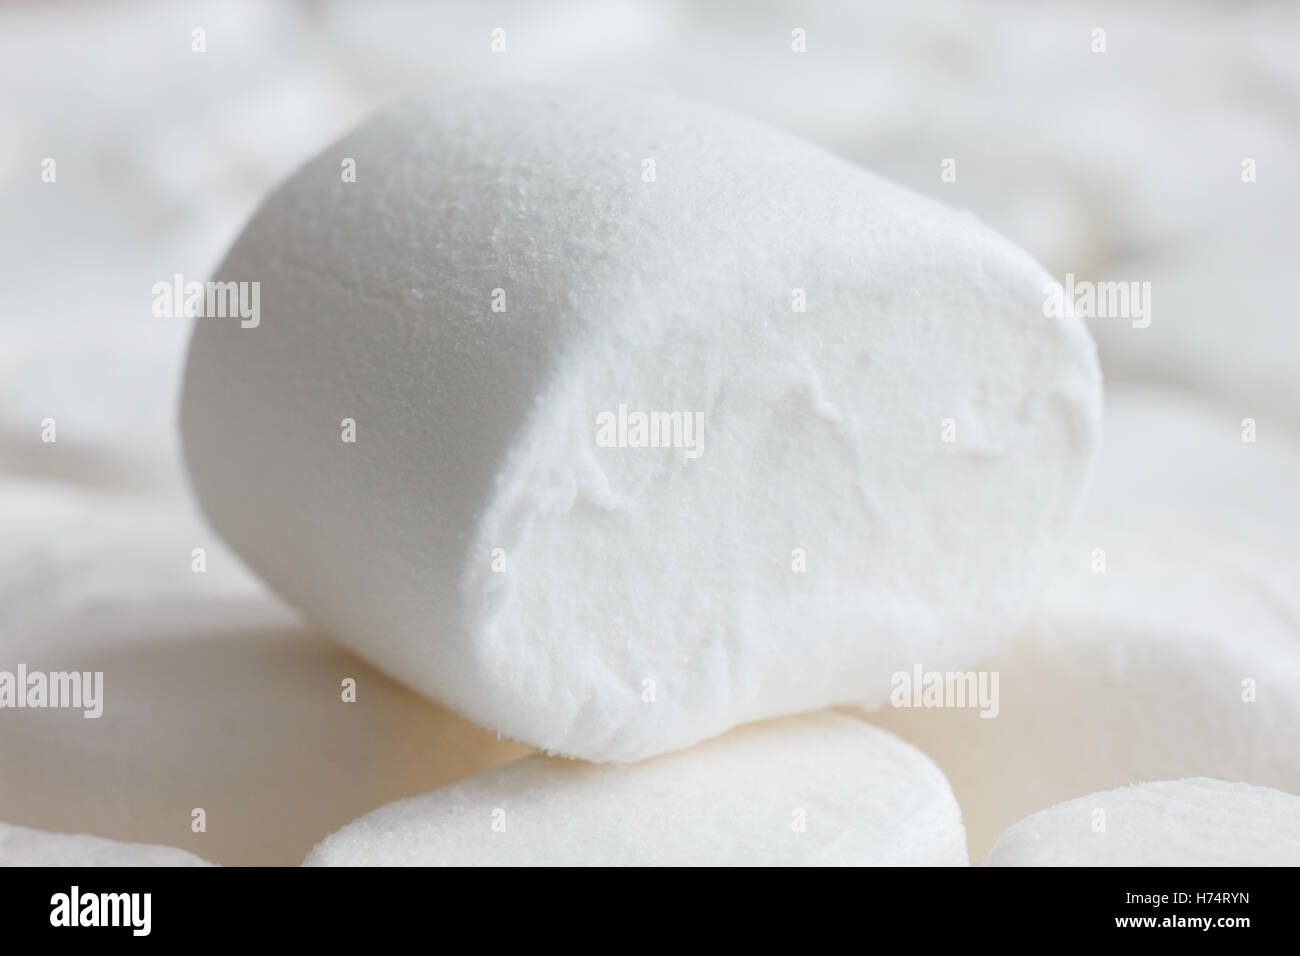 Single white marshmallow sitting on other marshmallows. Blurry background. - Stock Image